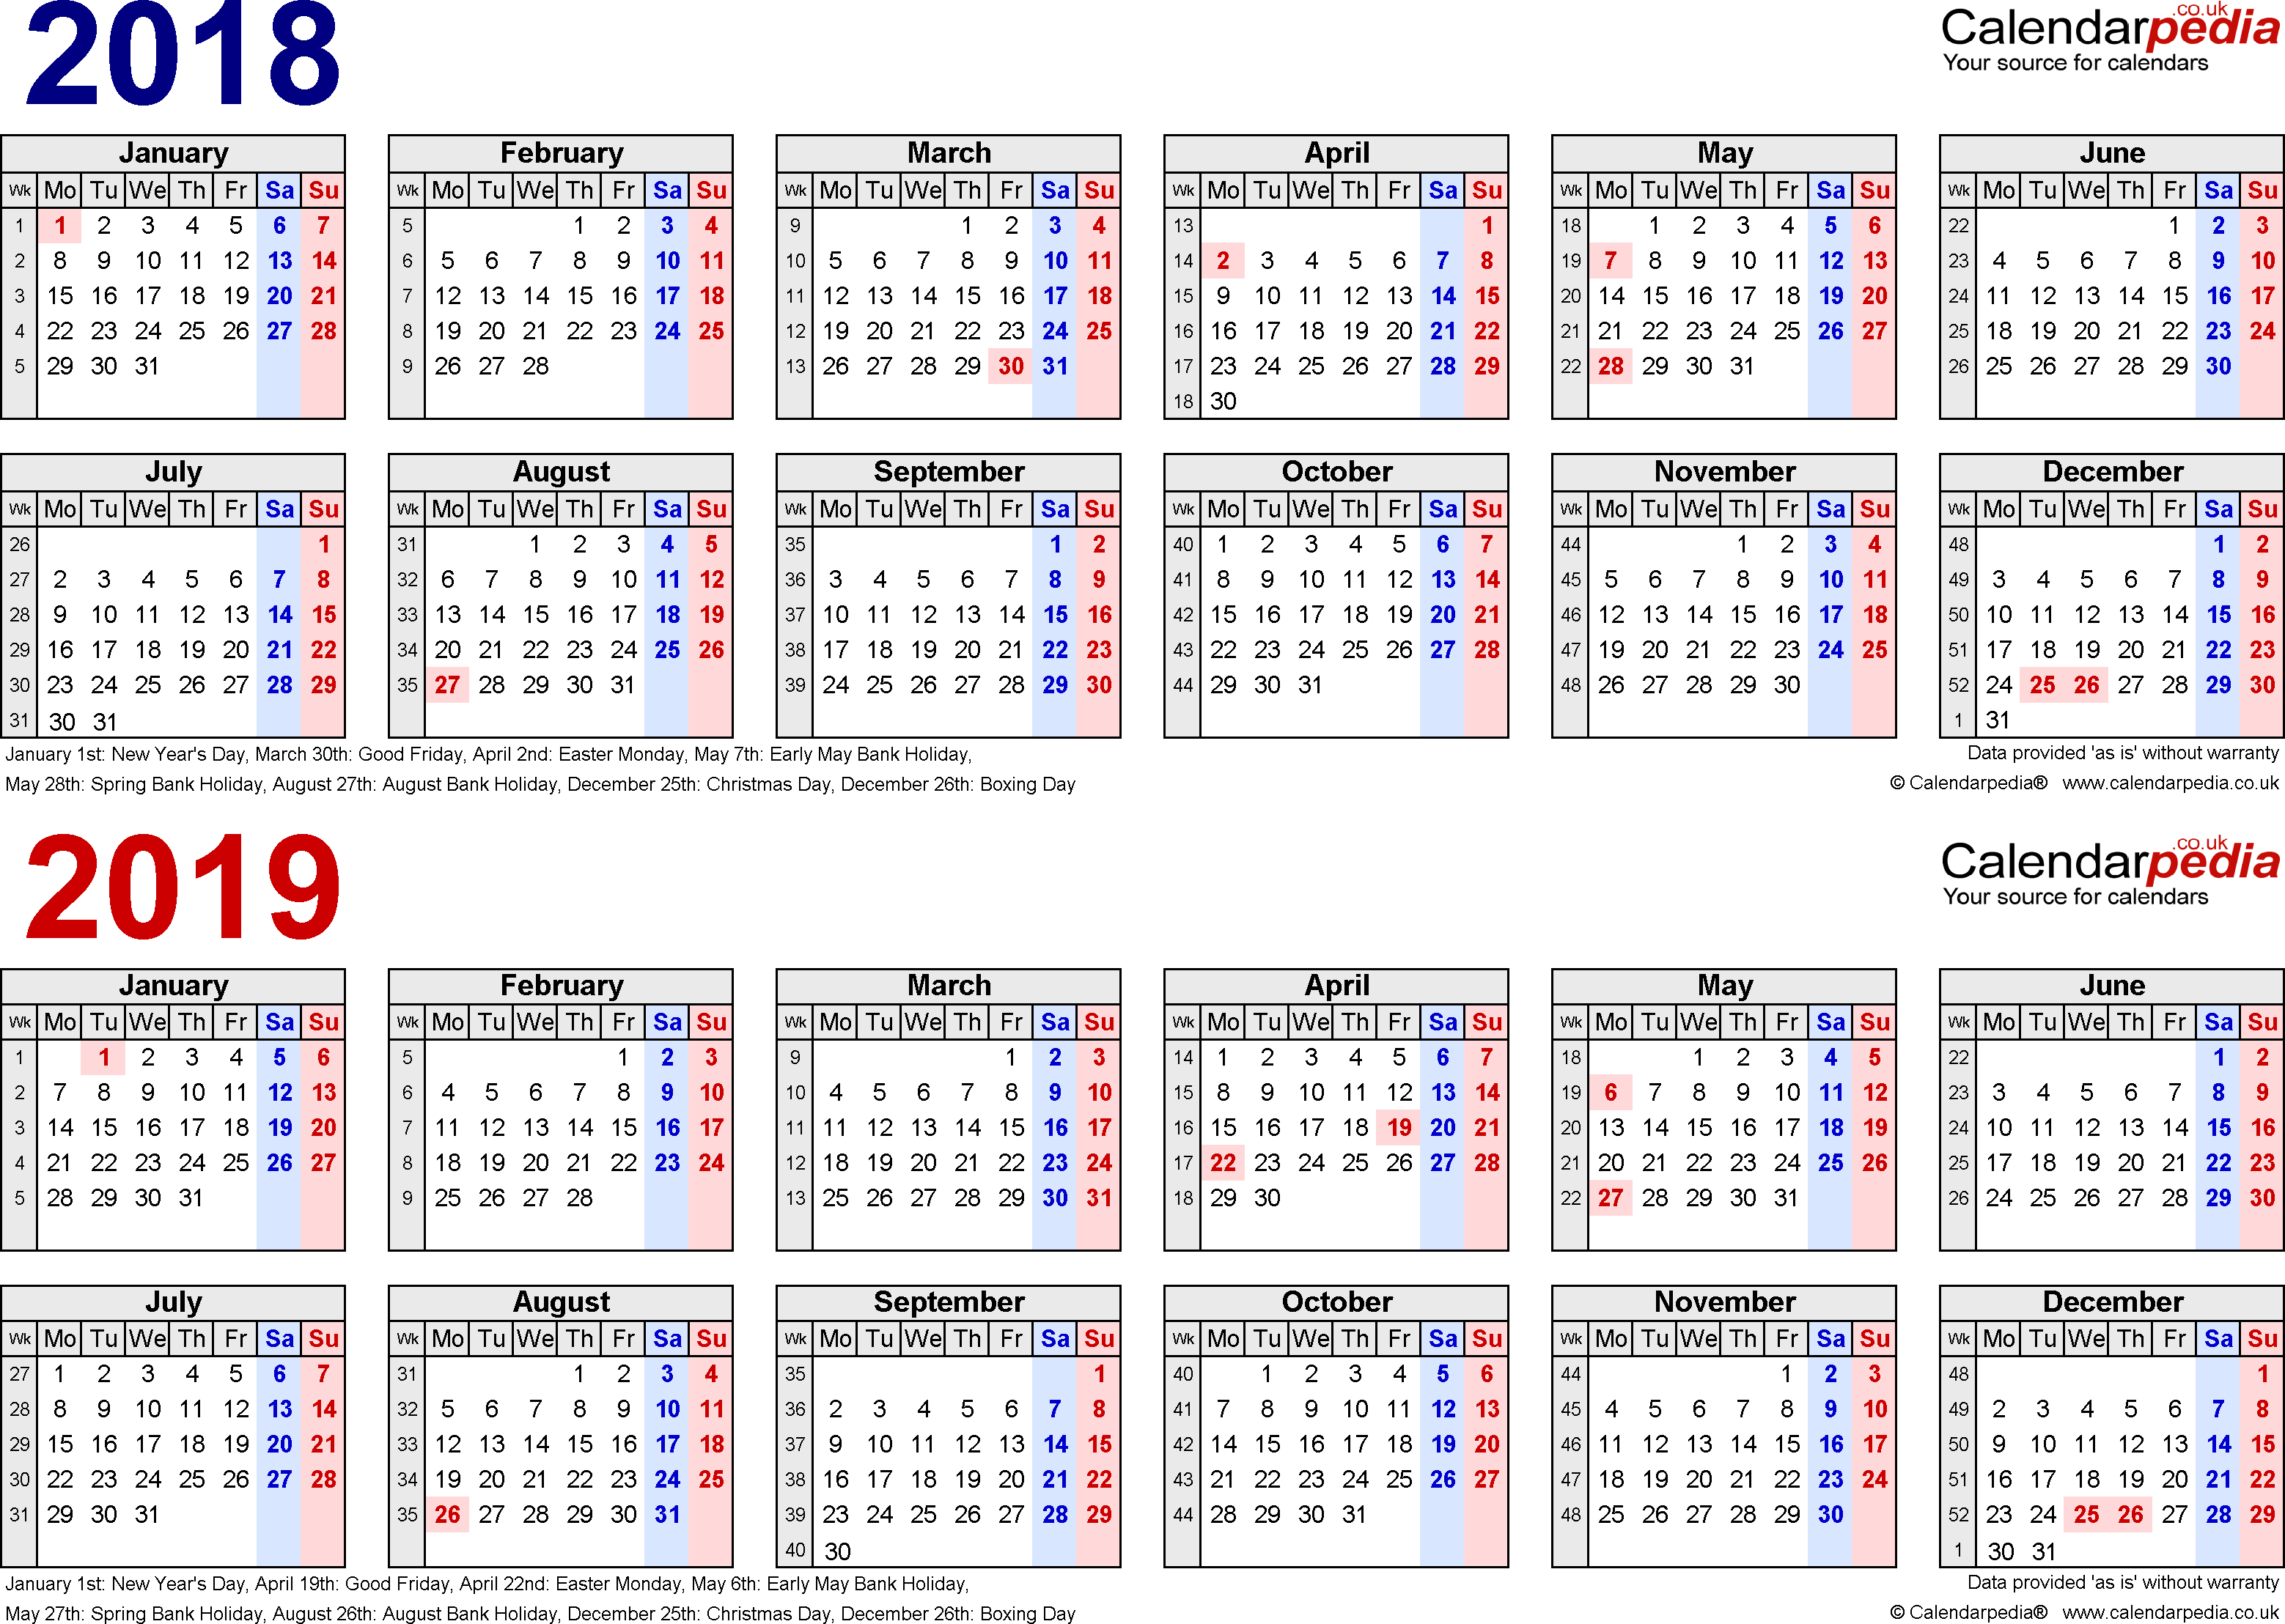 template 1 excel template for two year calendar 20182019 in bluered